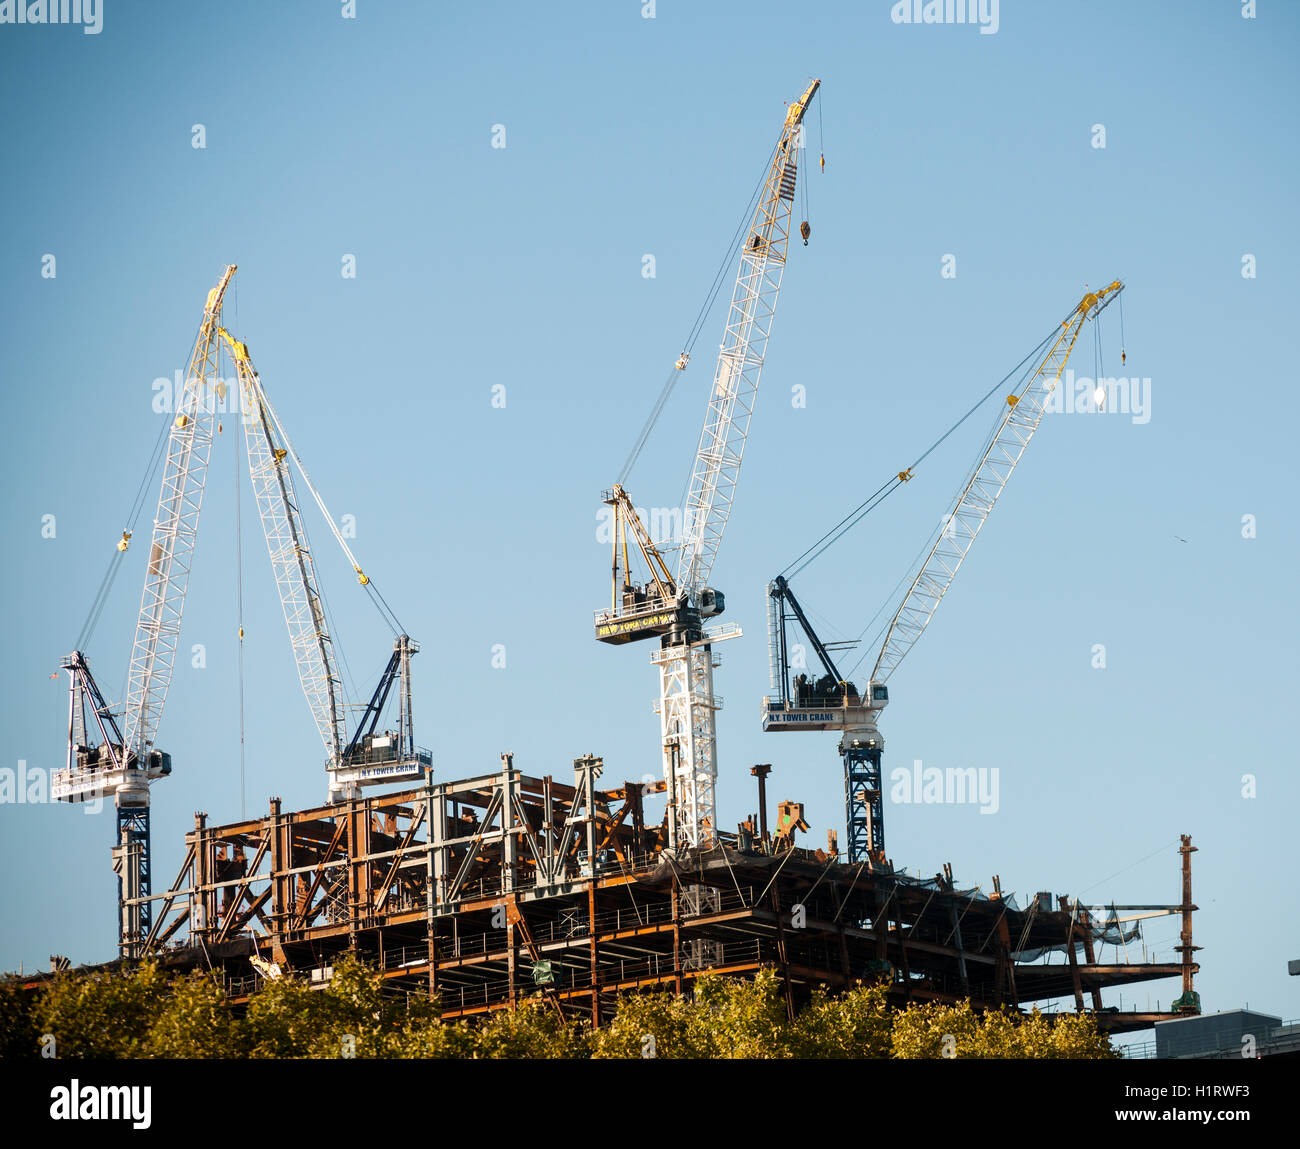 Cranes being used in the construction of the 30 Hudson Yards project on the west side of New York on Monday, September - Stock Image